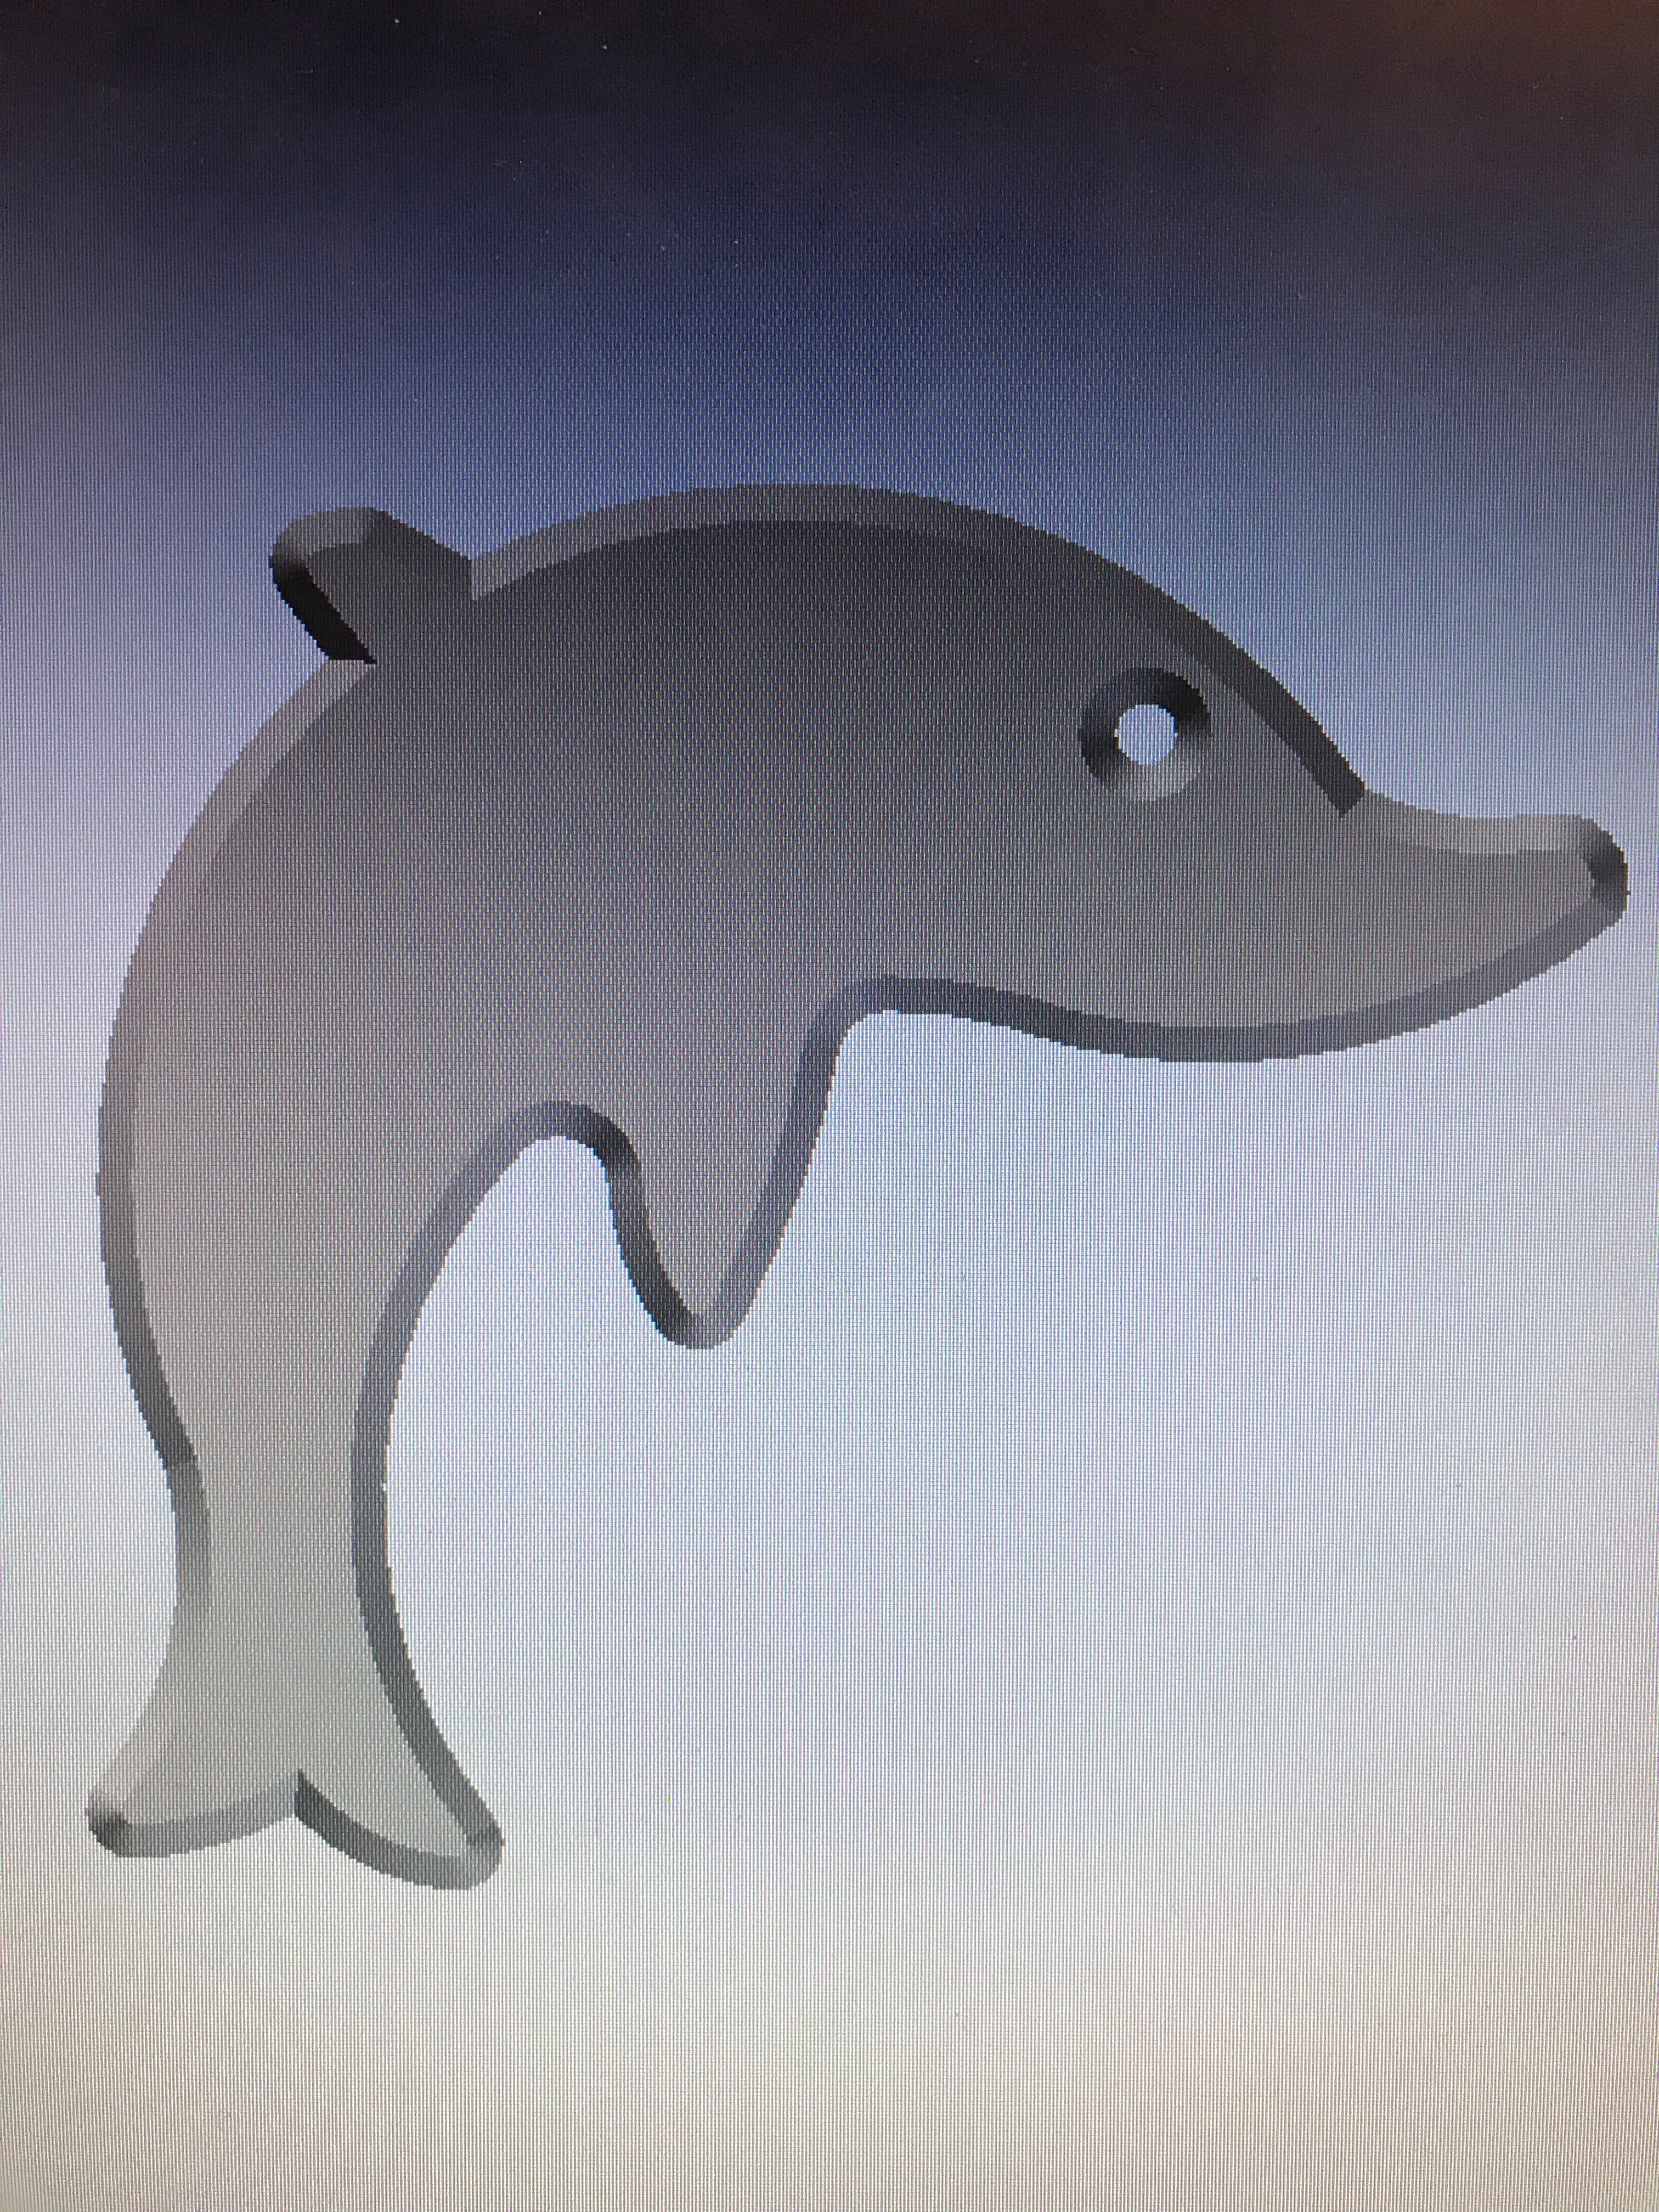 Picture of Extruding the Dolphin